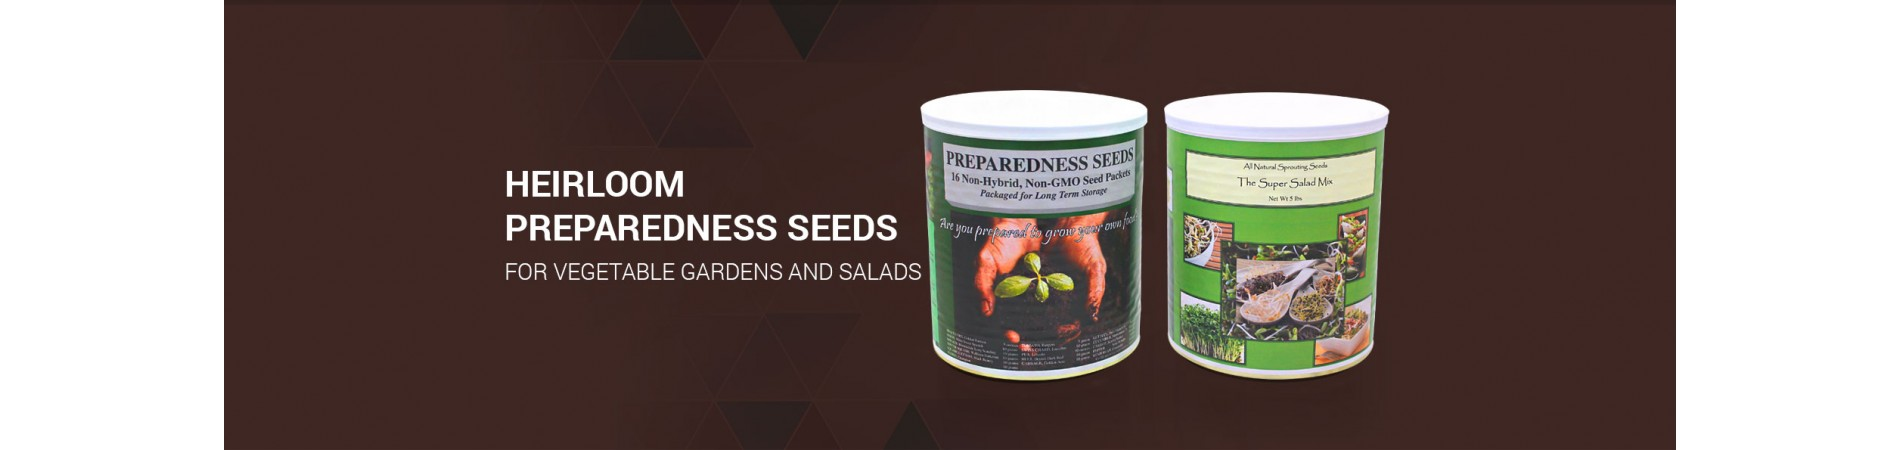 Heirloom Preparedness Seeds for Vegetable